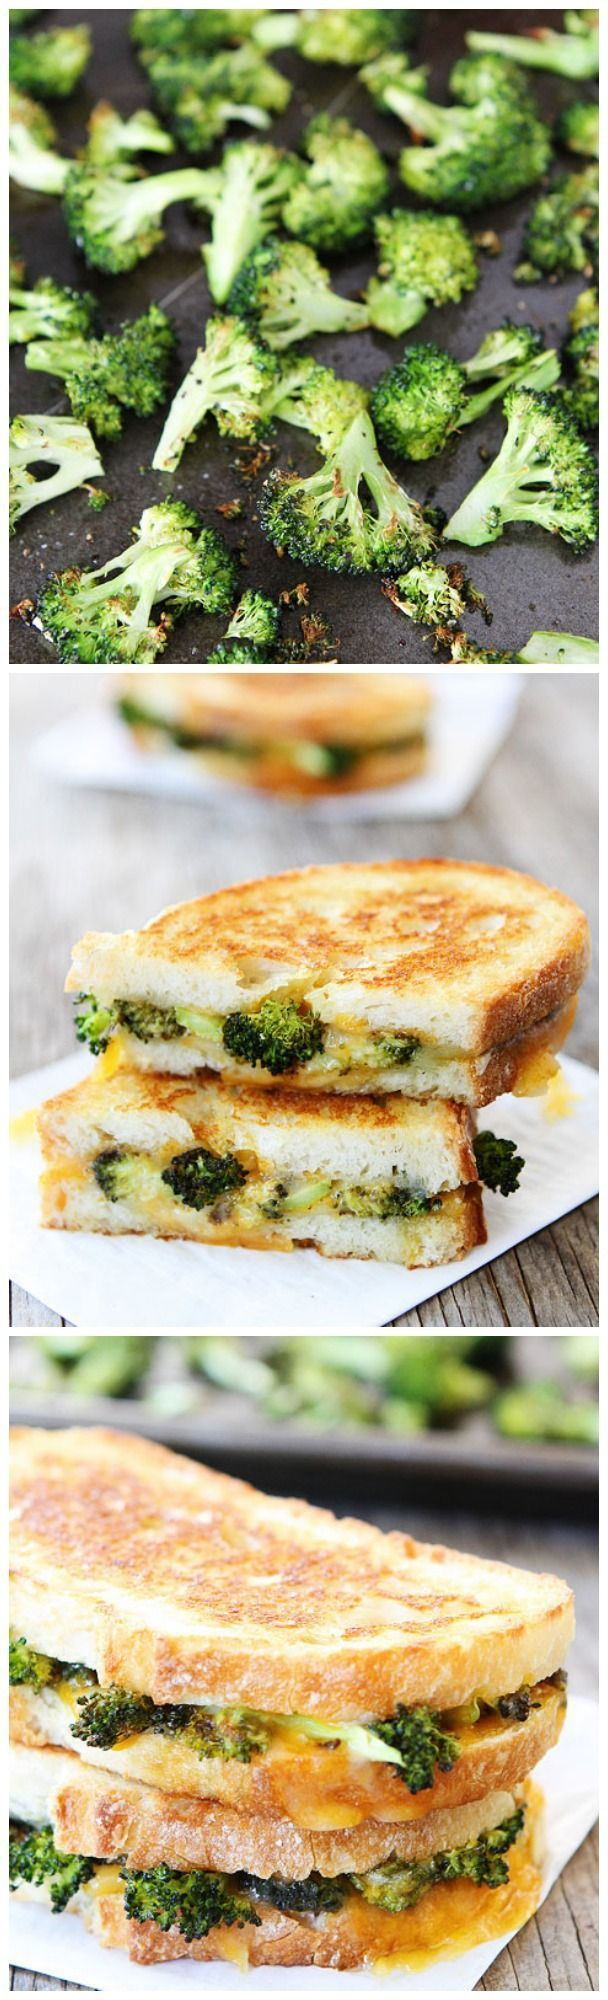 Roasted Broccoli Grilled Cheese Sandwich #grilledcheese #comfortfood #sandwich